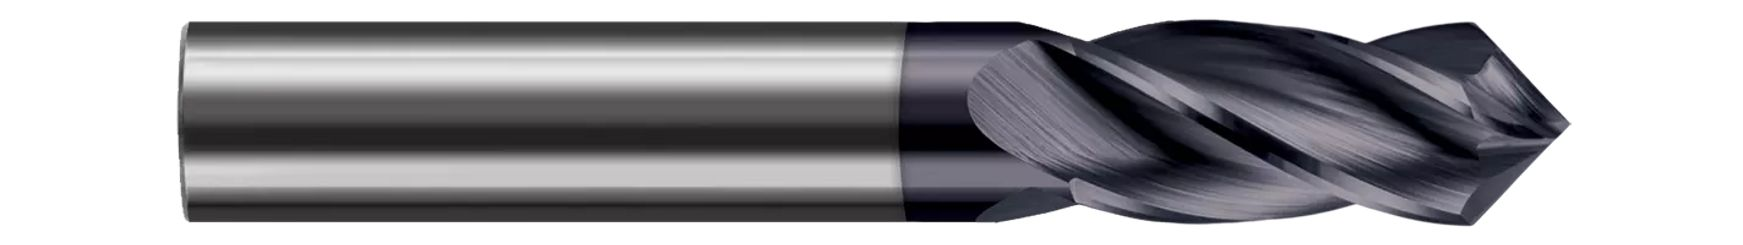 Drill/End Mills - Helical Tip - 4 Flute